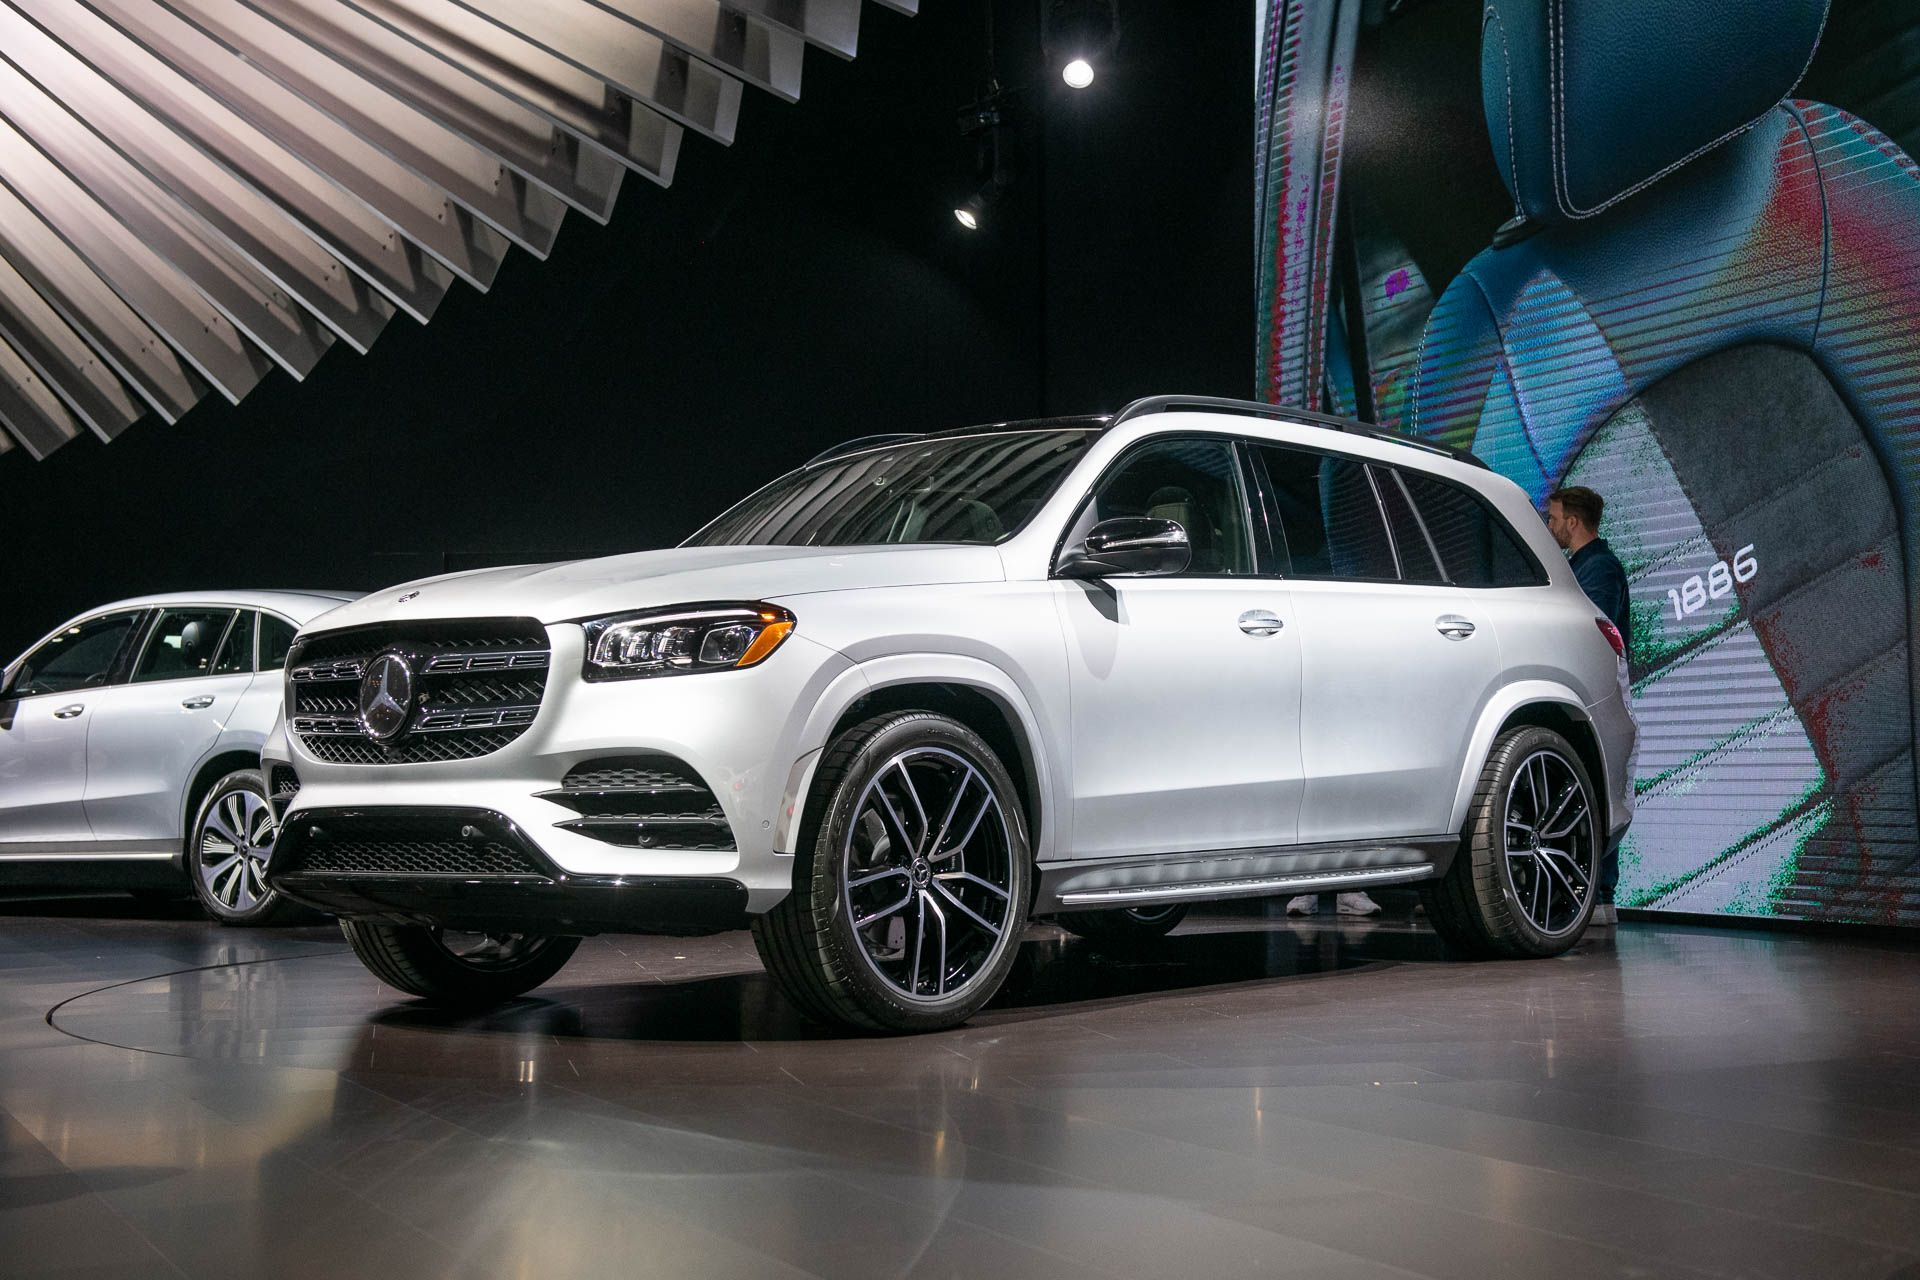 2020 MercedesBenz GLS aims to be the SClass of SUVs